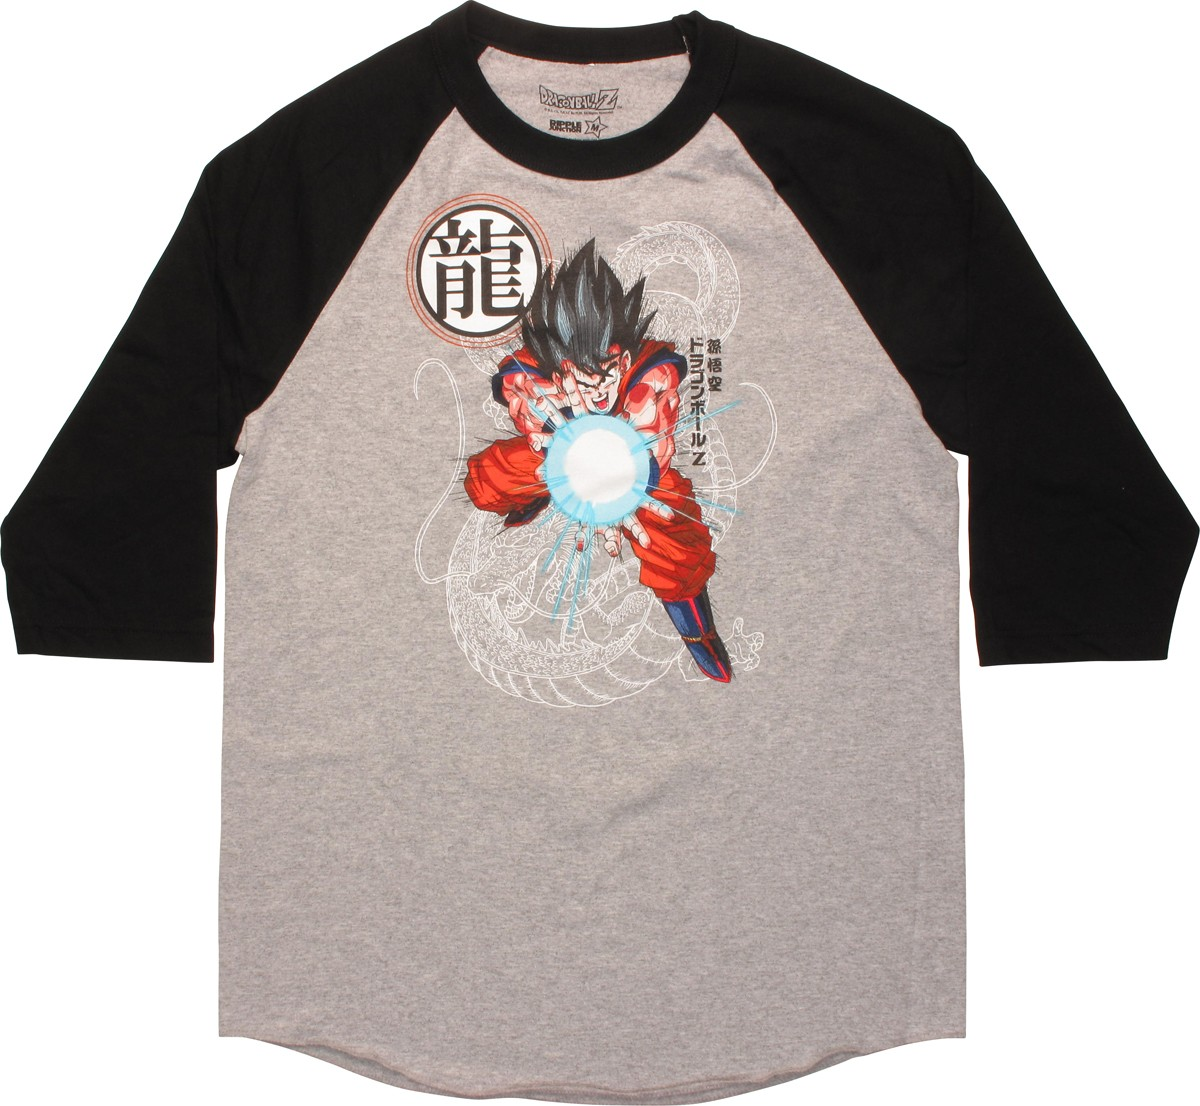 dragon ball z goku kamehameha raglan t shirt. Black Bedroom Furniture Sets. Home Design Ideas